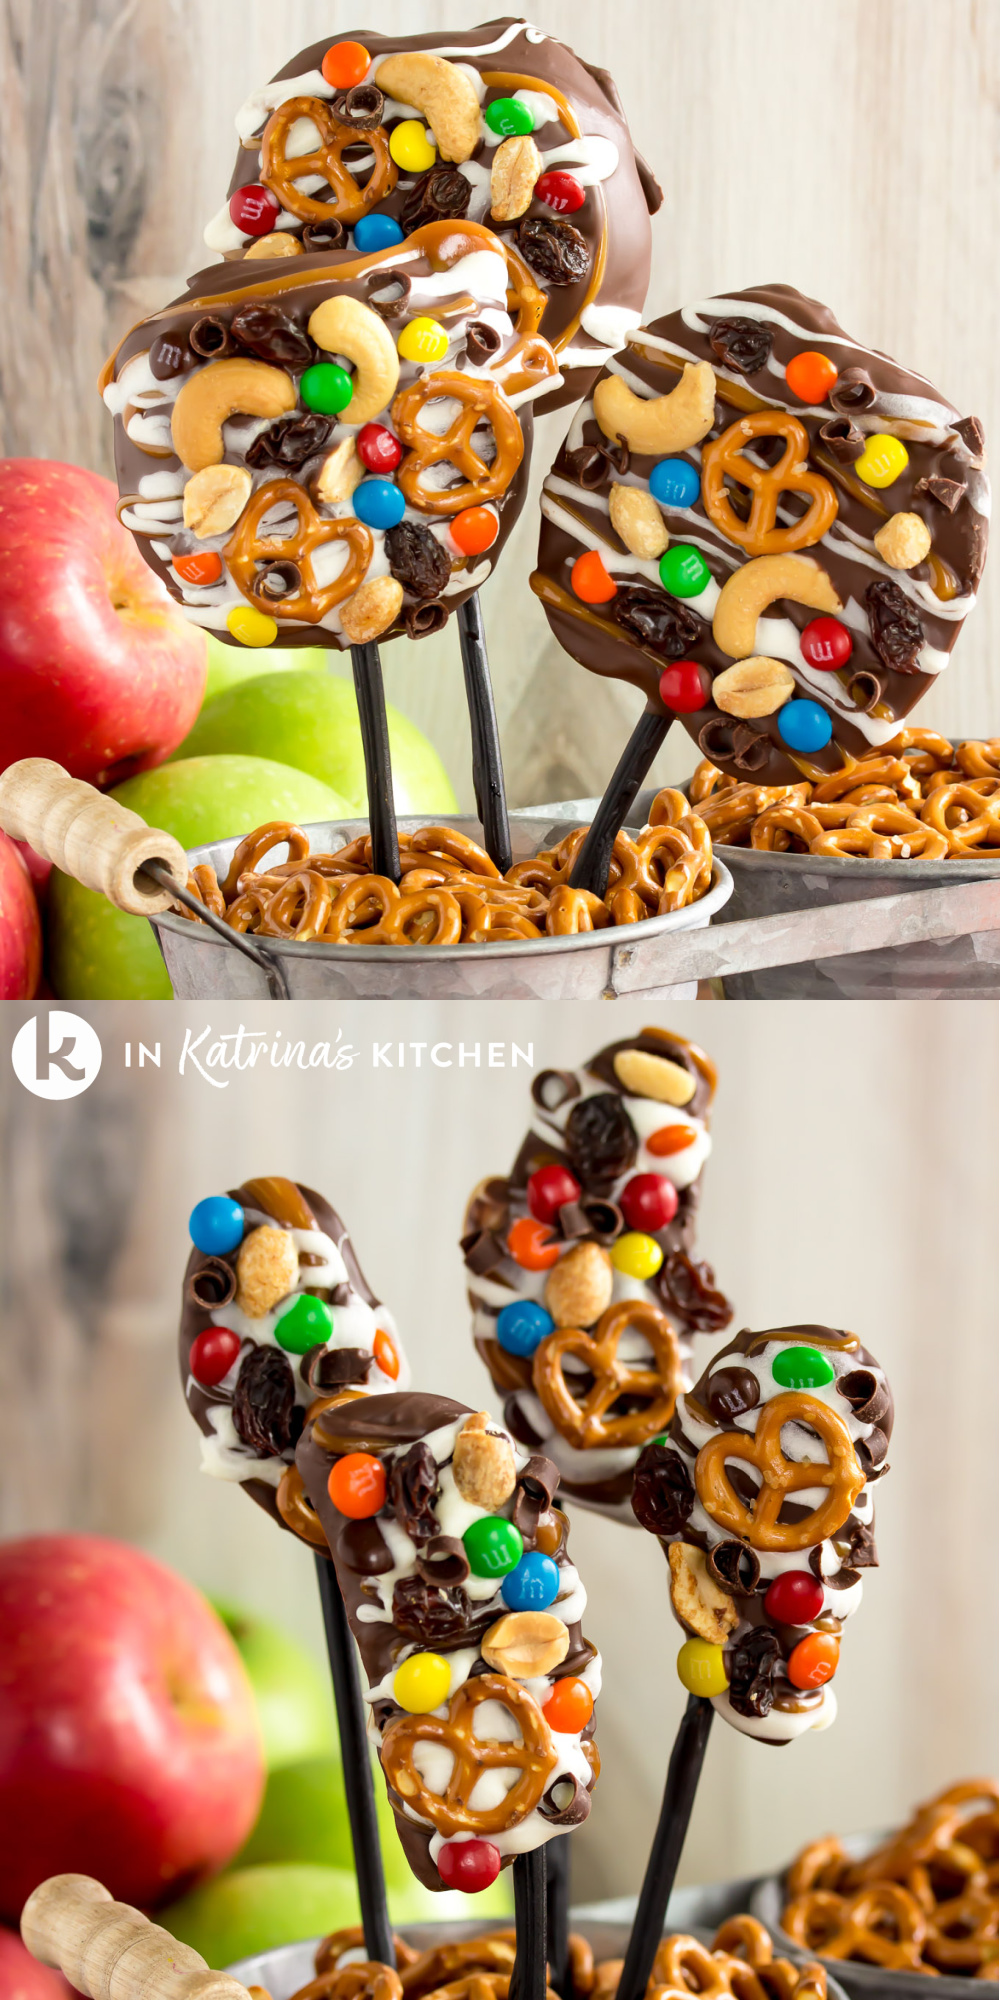 Any way you slice it, these Trail Mix Caramel Apples are a must-make this Fall! PRINT and PIN the full recipe and tutorial at In Katrina's Kitchen today!